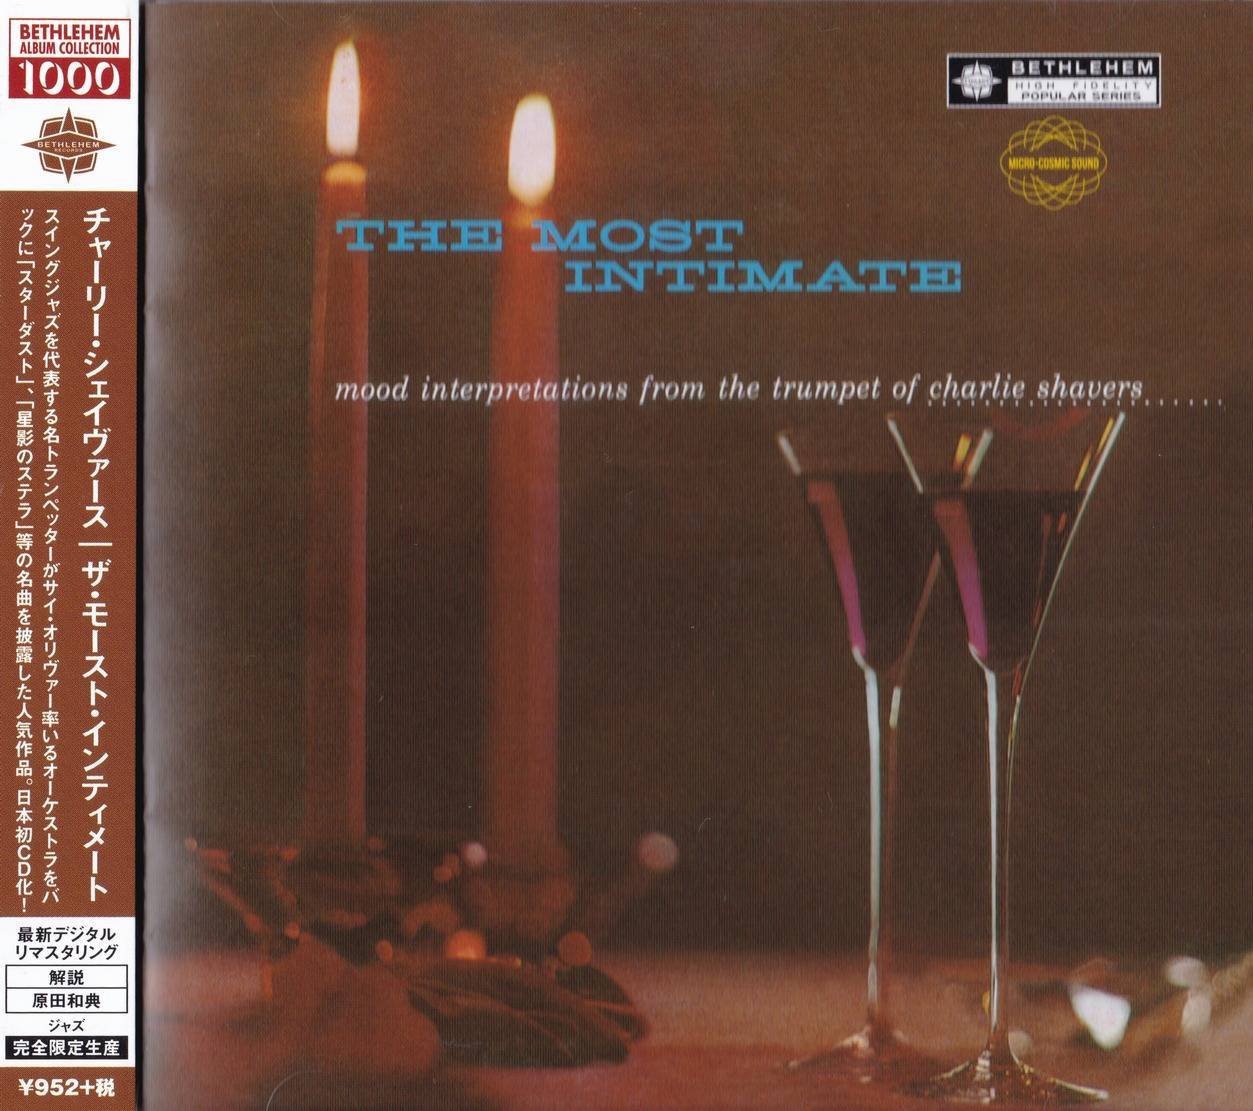 Charlie Shavers - The Most Intimate (1955) {2014 Japan Bethlehem Album Collection 1000 CDSOL-6152}